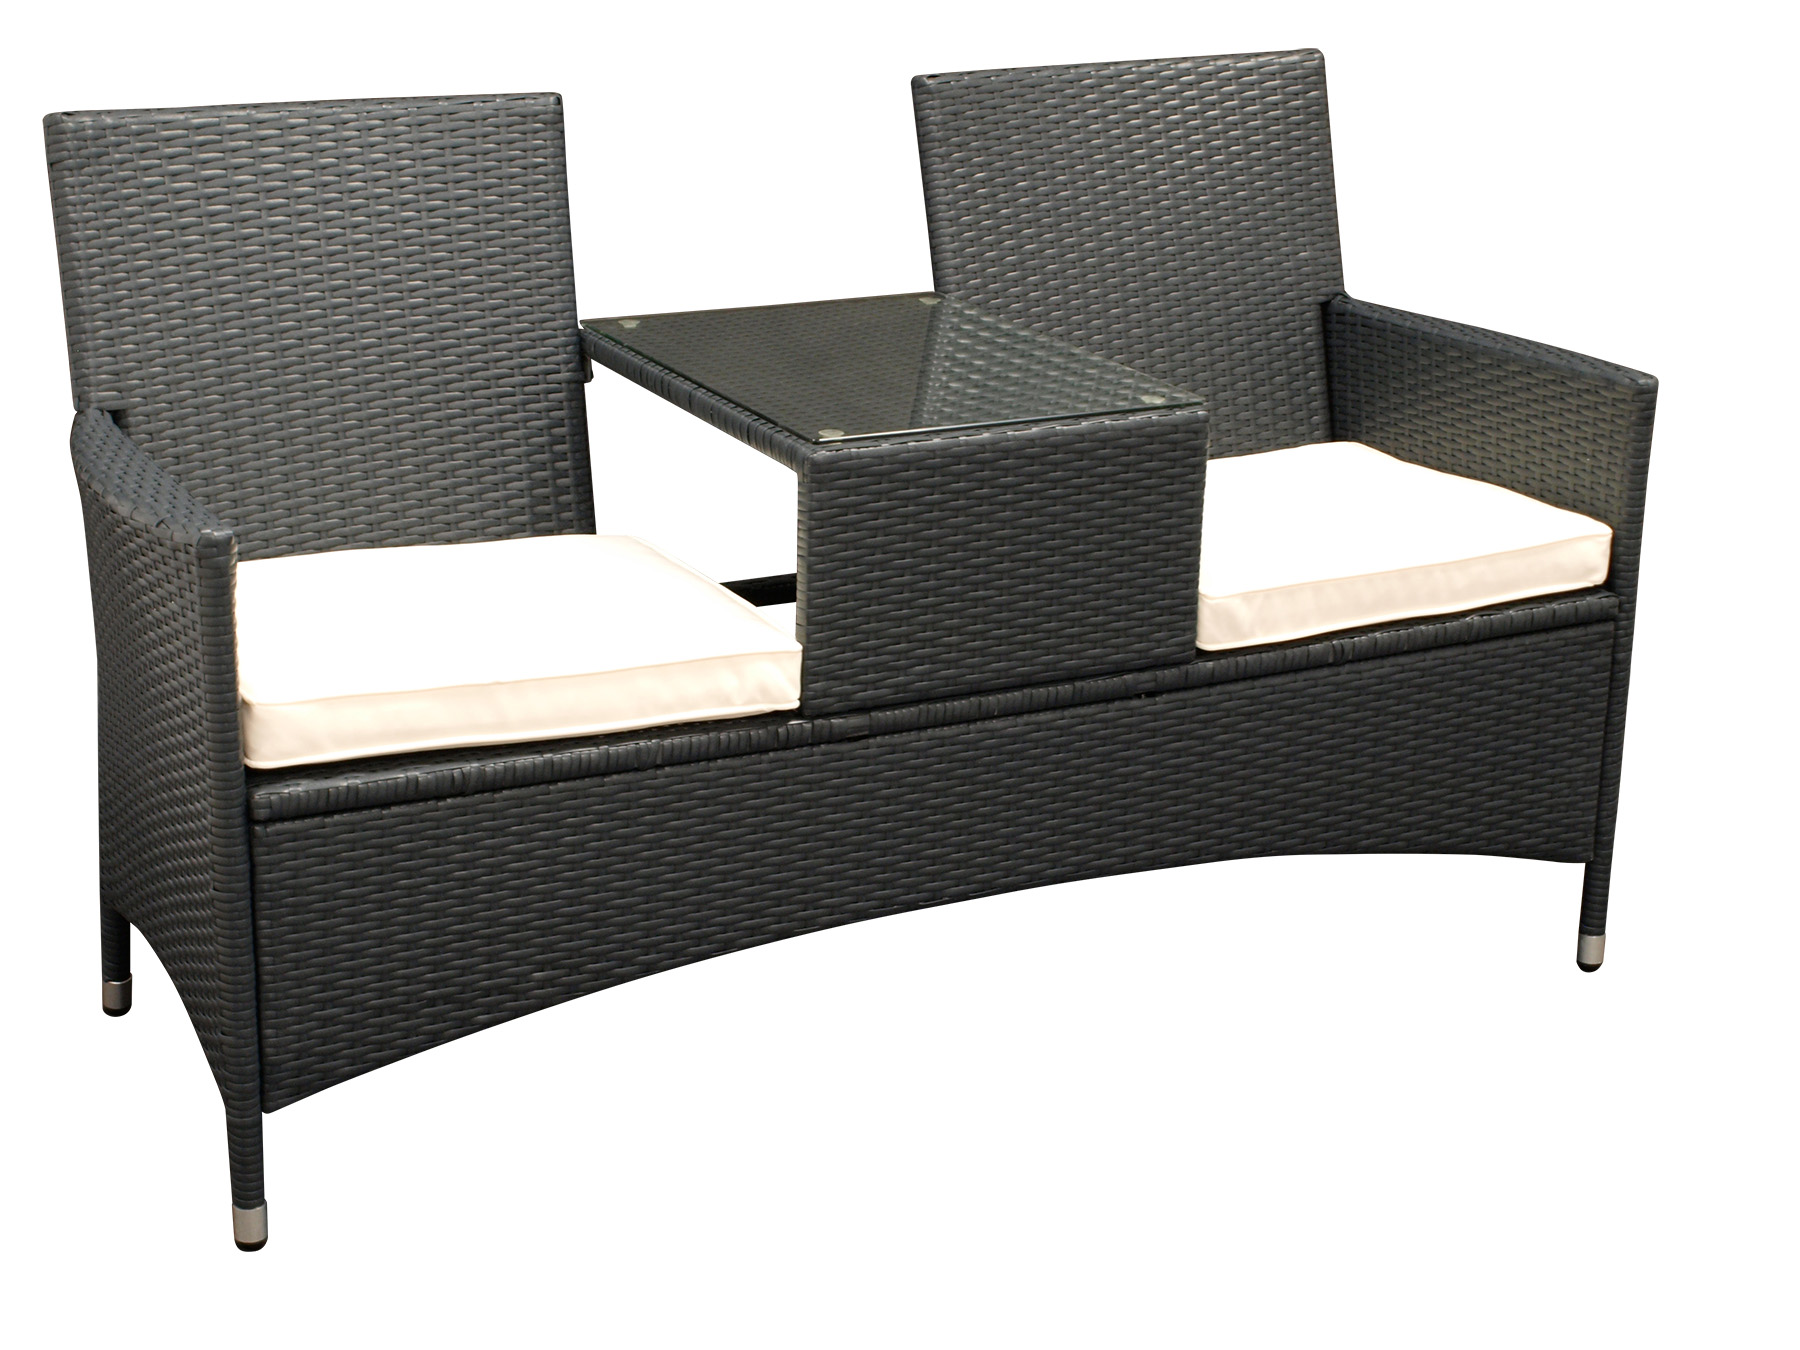 elegante tete tete bank san vincenzo 2 sitzer stahl polyrattan dunkelgrau ebay. Black Bedroom Furniture Sets. Home Design Ideas